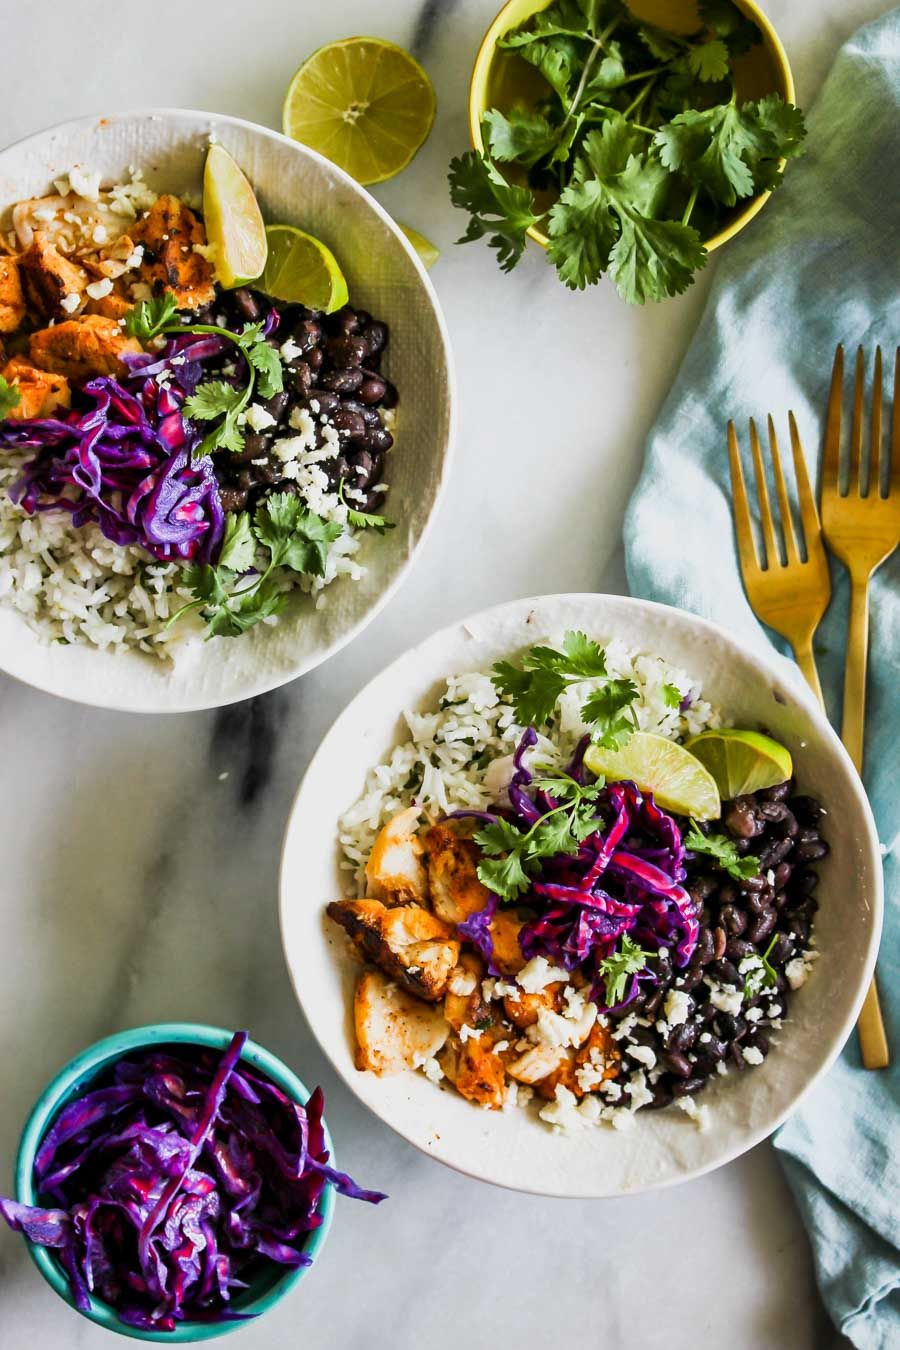 Fish Taco Bowl with Black Beans, Pickled Cabbage and Cilantro Lime Rice